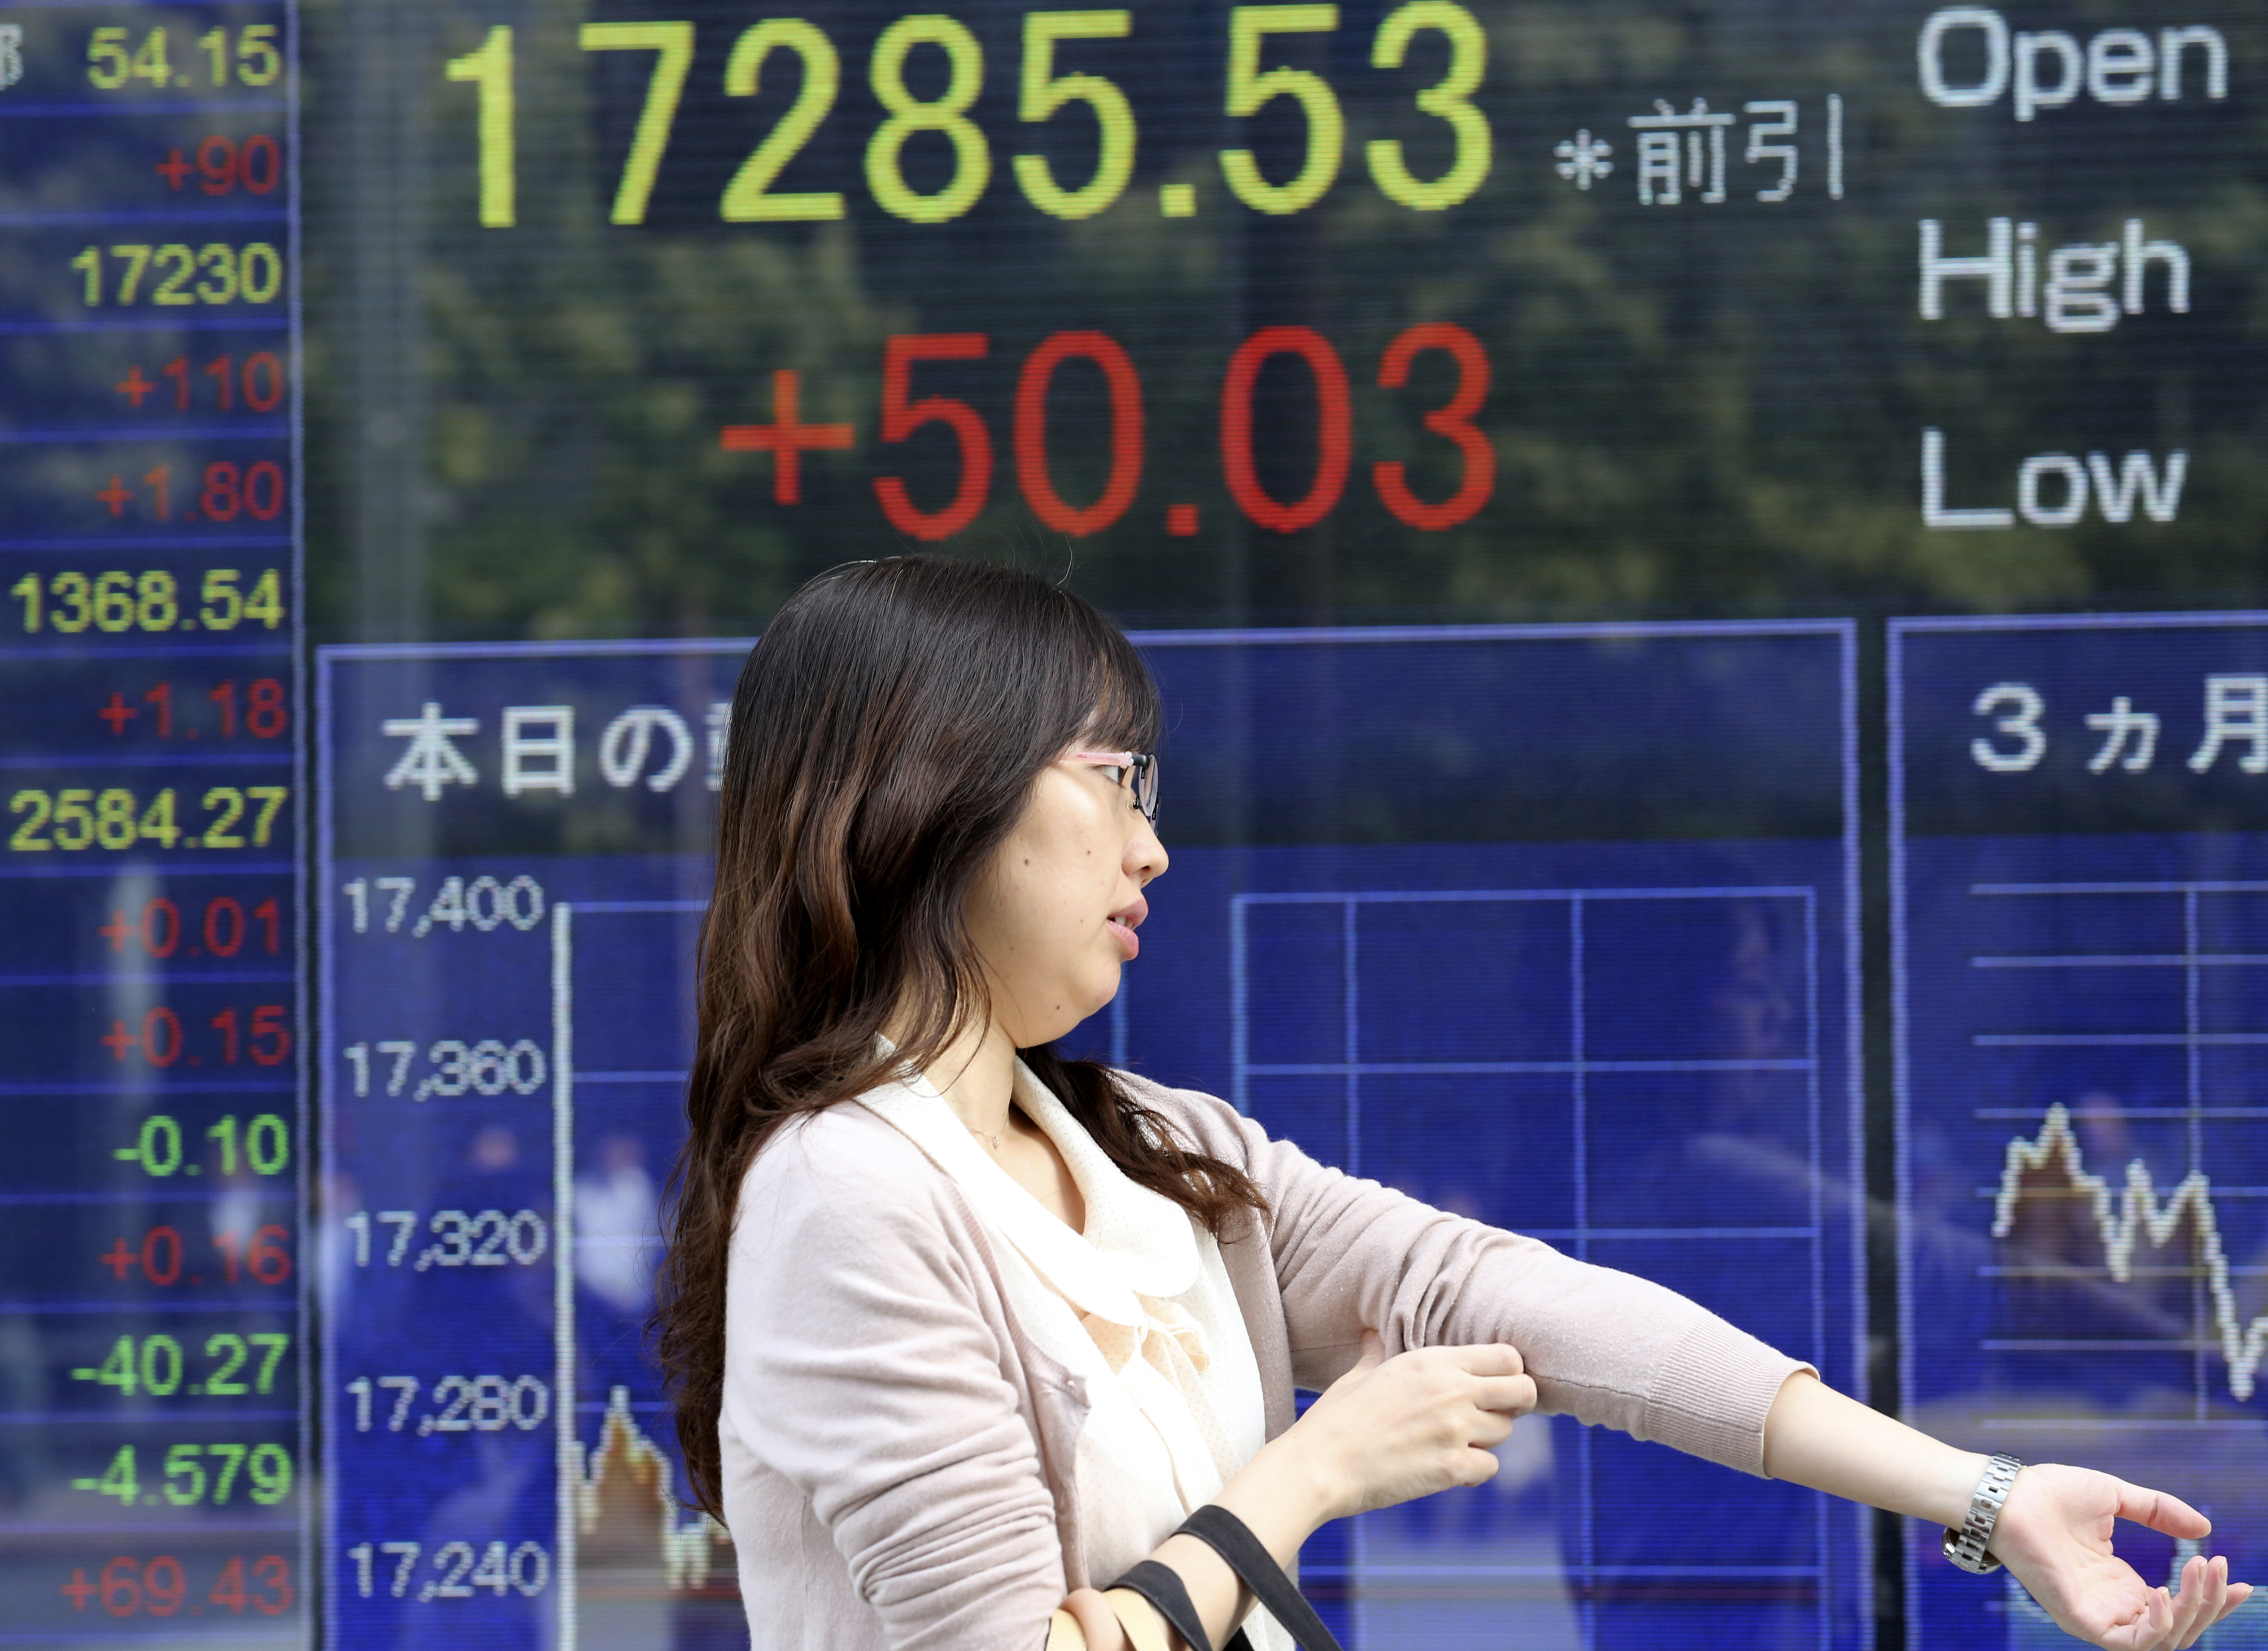 Japan Financial Markets A woman walks by an electronic stock board of a securities firm in Tokyo Friday Oct. 21 2016. Asia stock markets drifted Friday as oil prices slid. The dollar rallied after Europe's central bank kept the door open for more